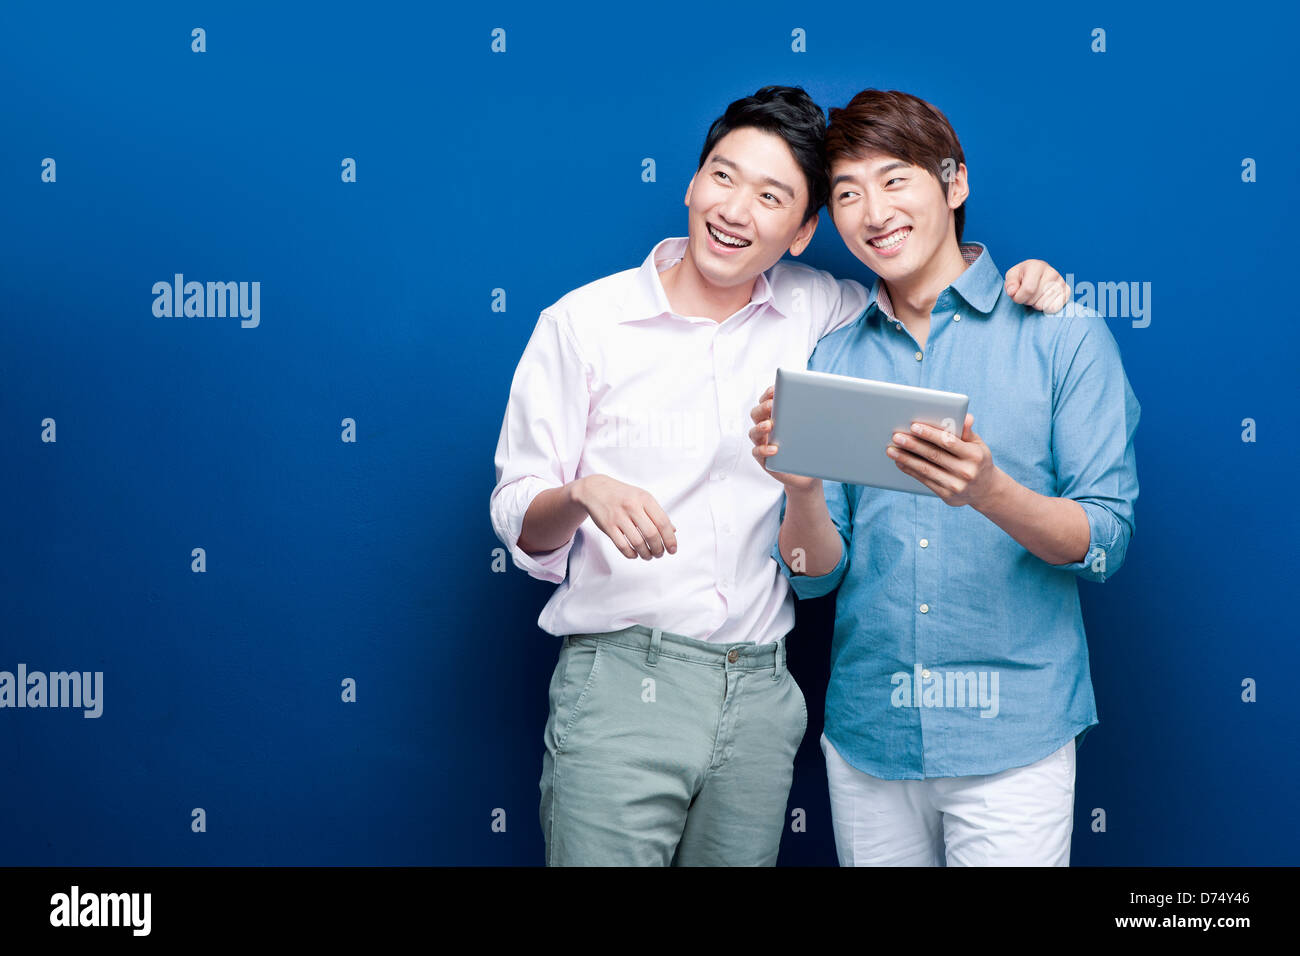 two men in shirts sharing tablet PC - Stock Image